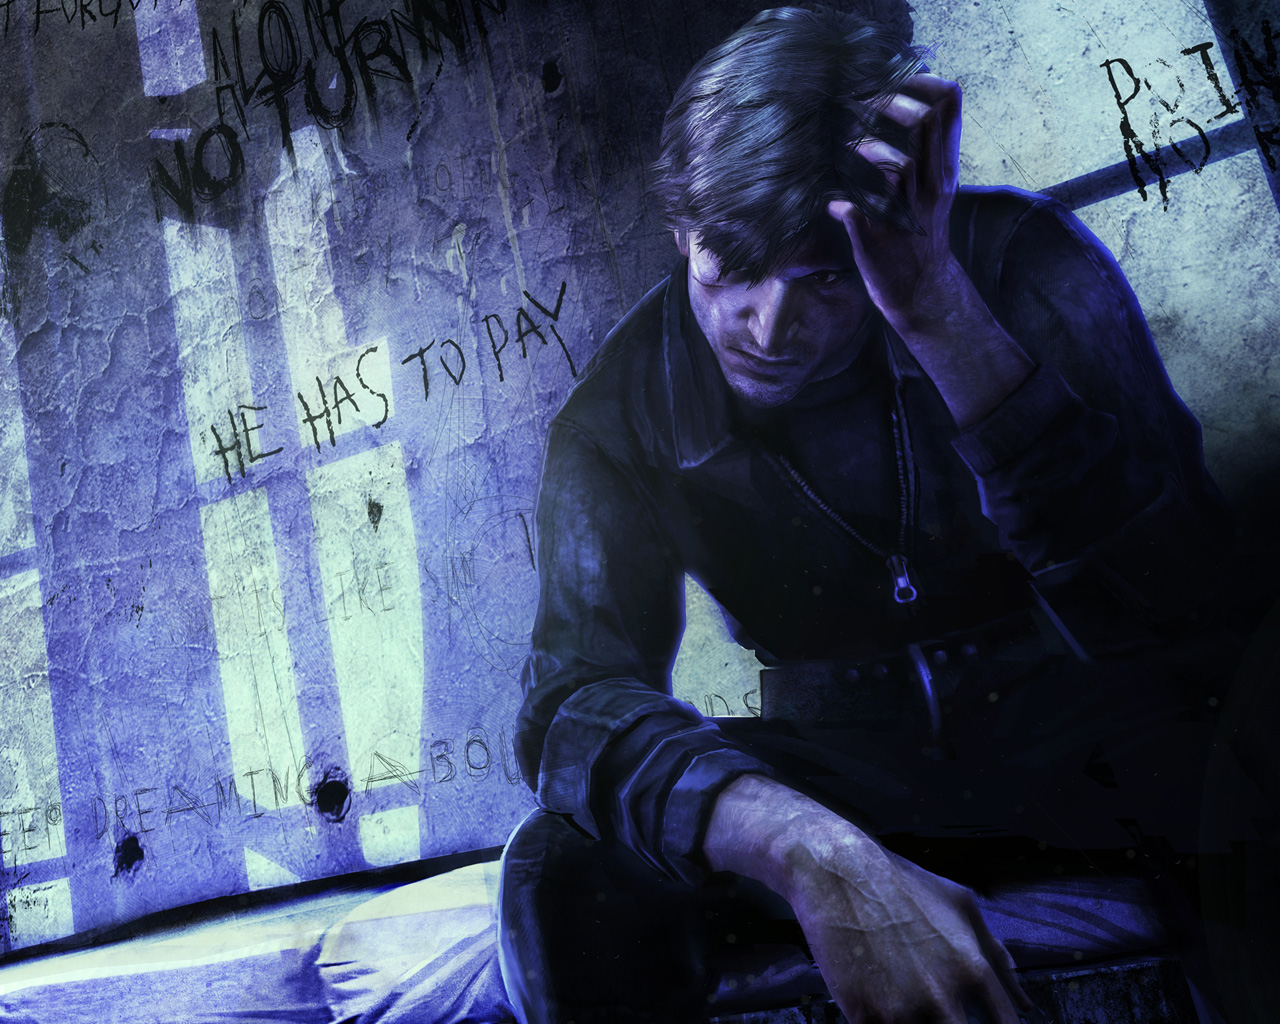 Silent Hill: Downpour Wallpaper in 1280x1024